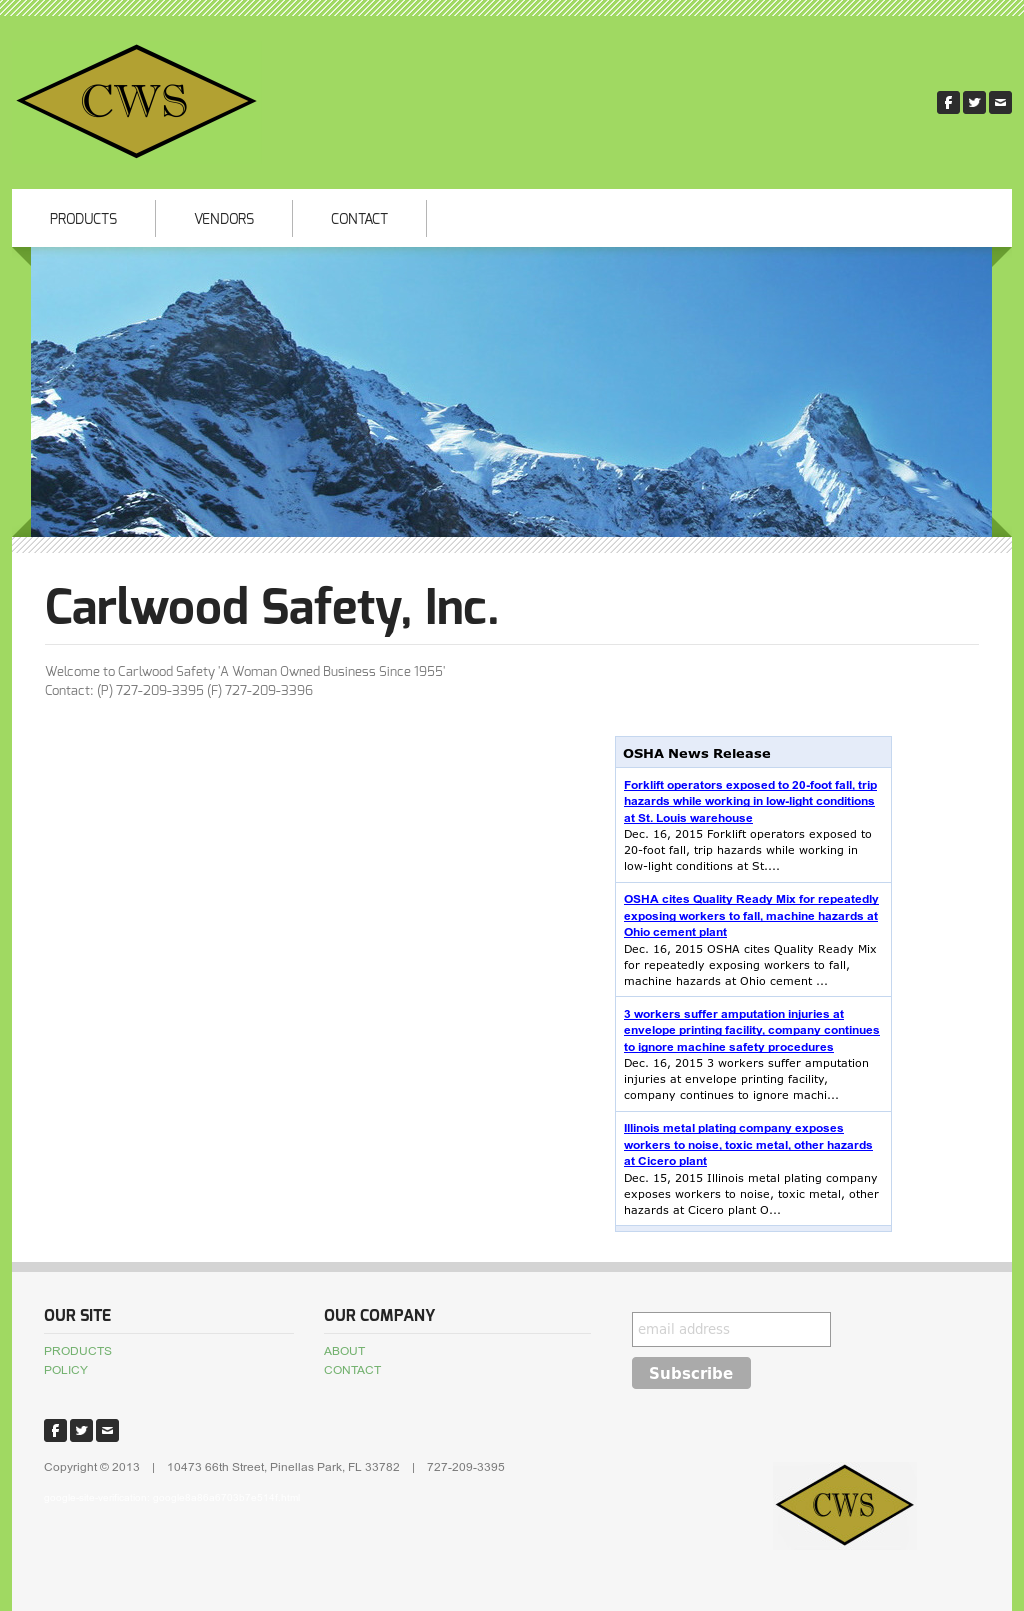 Carlwood Safety Competitors, Revenue and Employees - Owler Company